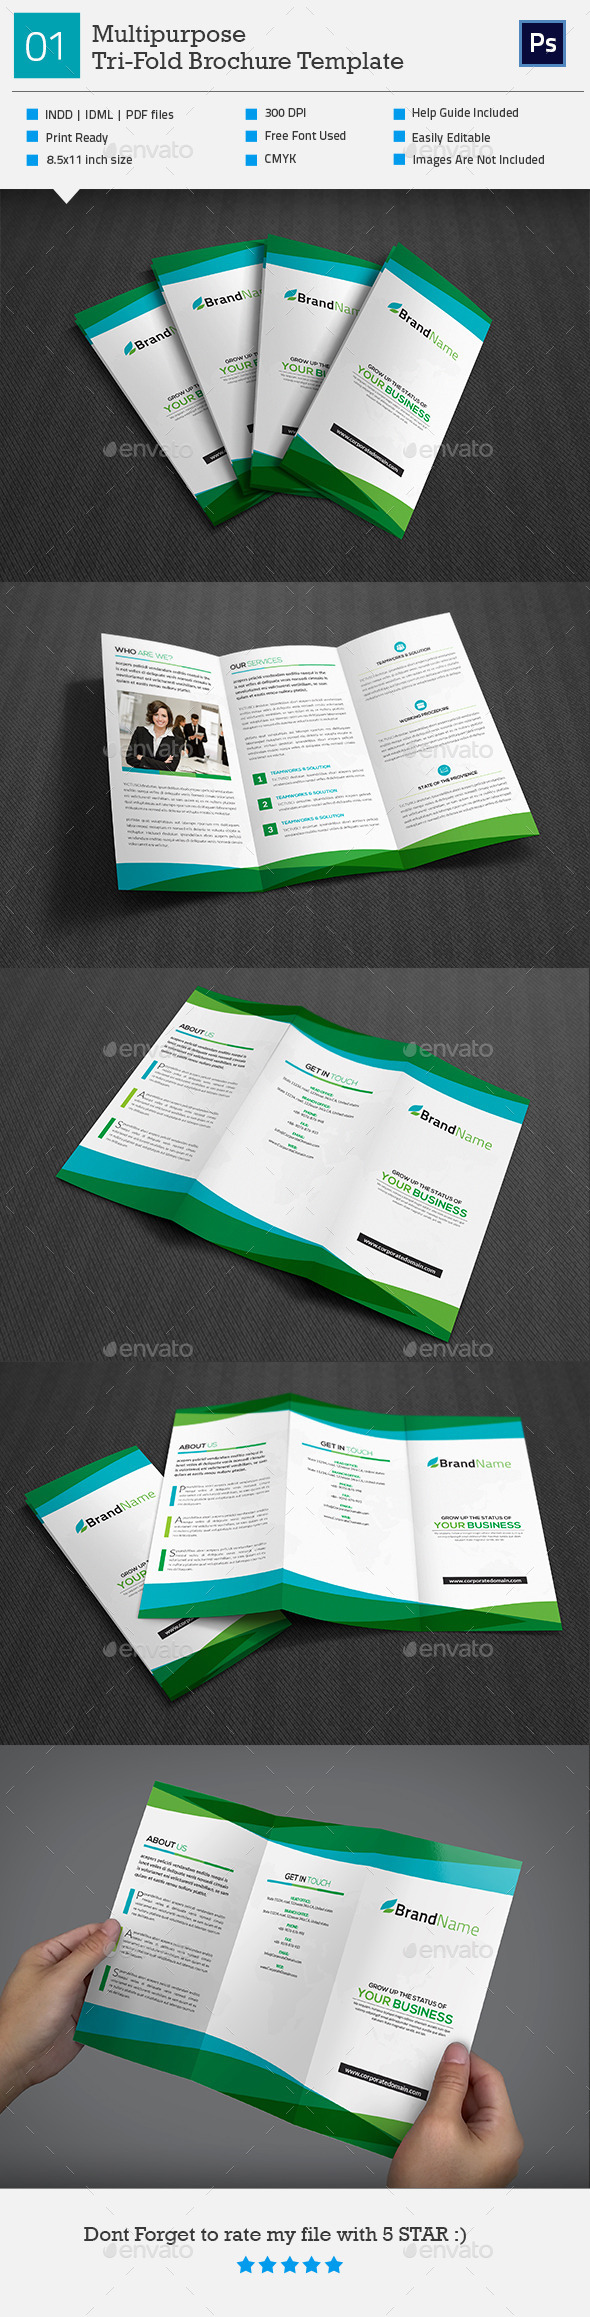 GraphicRiver Multipurpose Tri-Fold Brochure V1 11256061